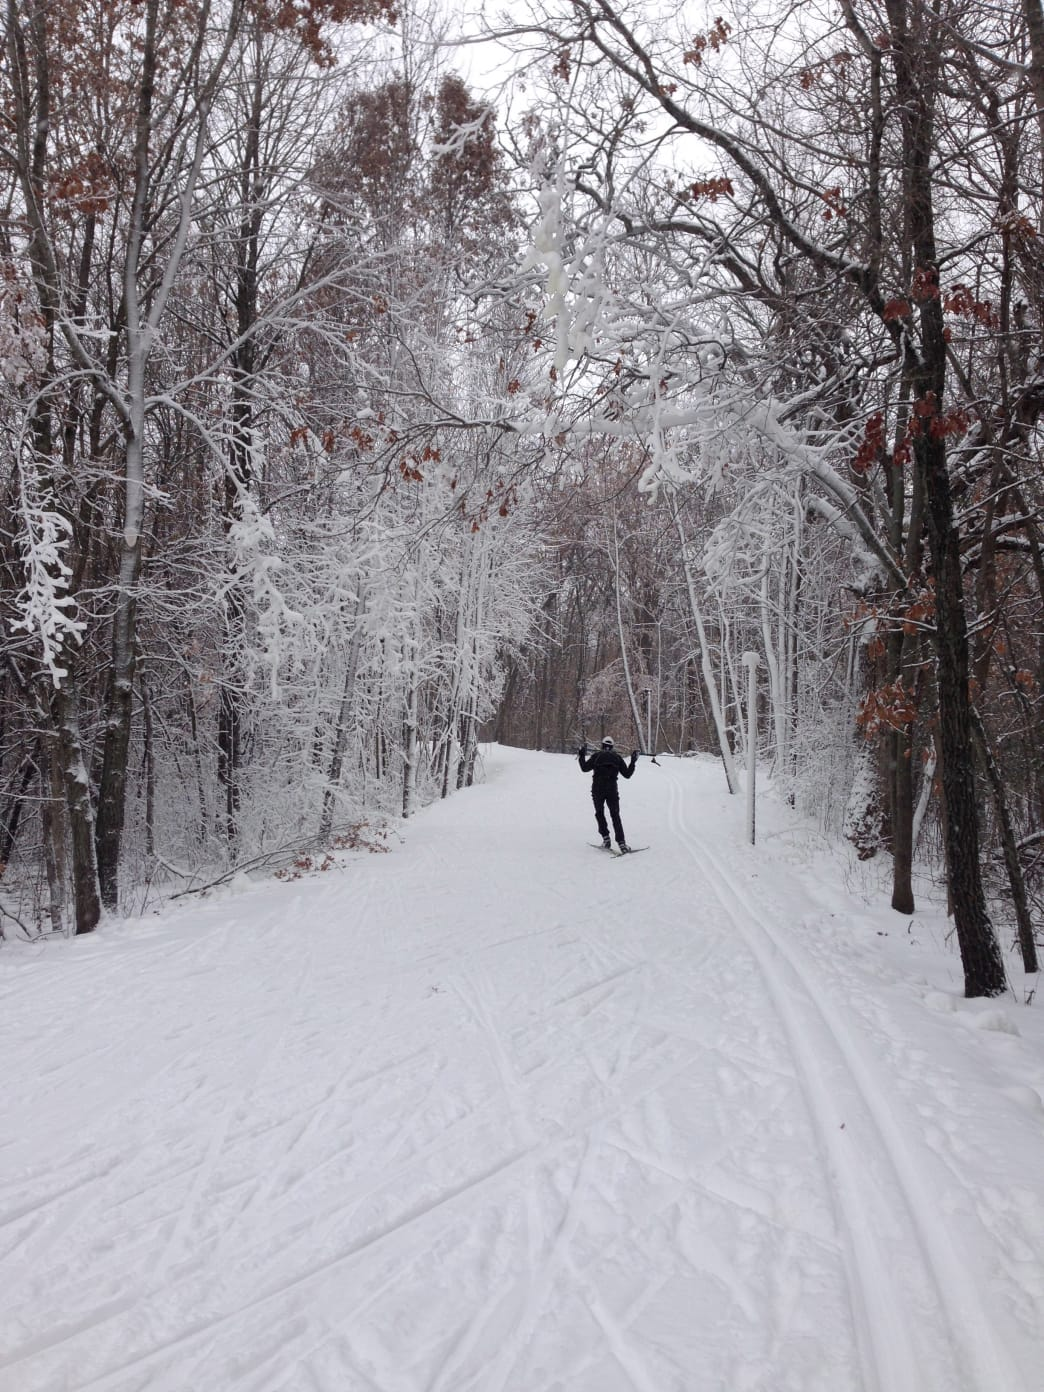 Elm Creek Park Reserve grooms its trails for both skate and classical skiing.